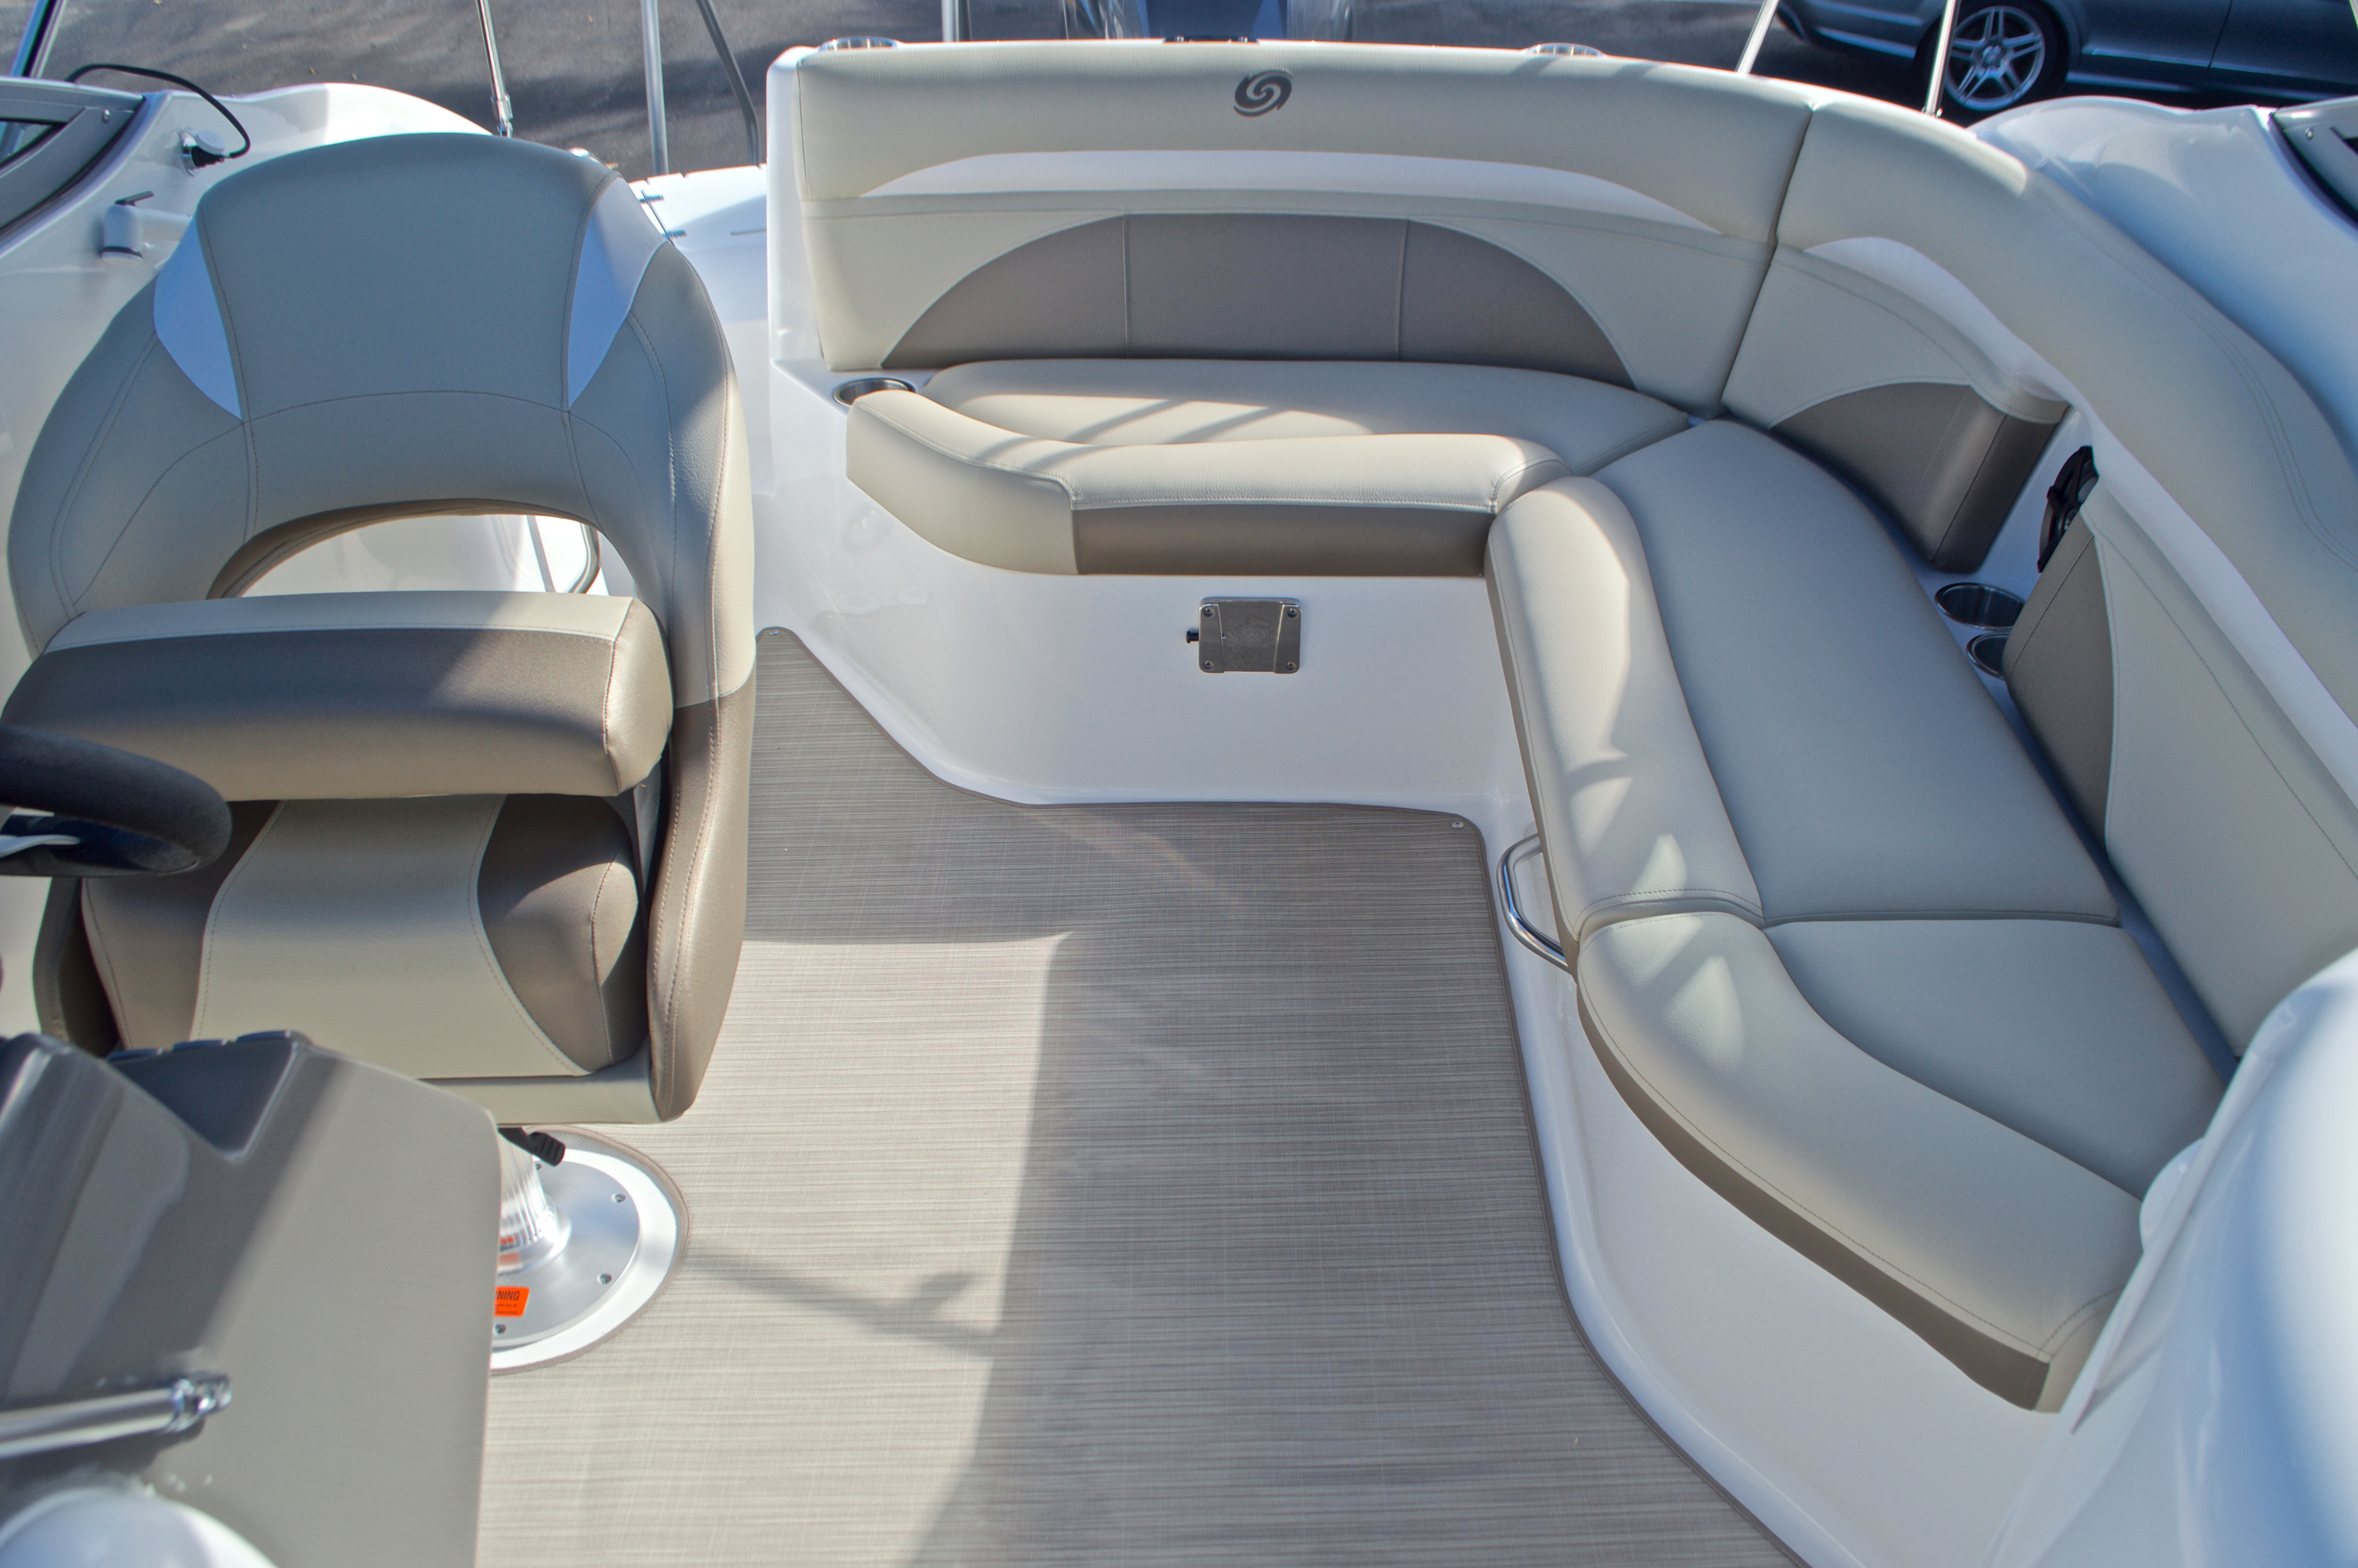 Thumbnail 13 for New 2017 Hurricane SunDeck SD 2200 OB boat for sale in West Palm Beach, FL